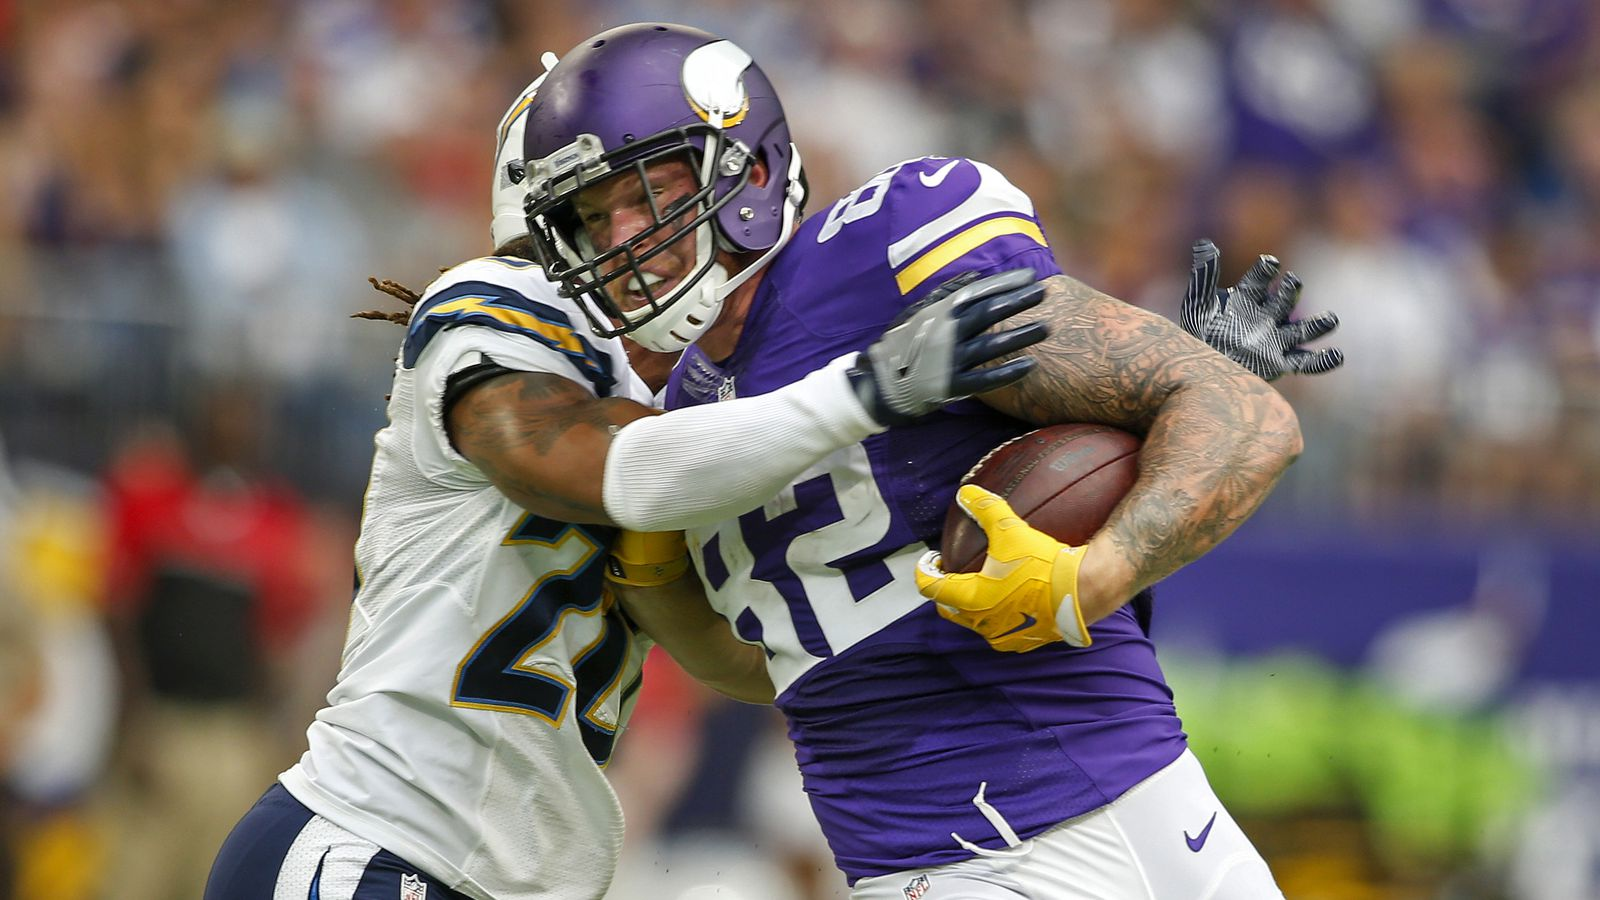 Chargers Vikings Final Score San Diego Chargers Lose To